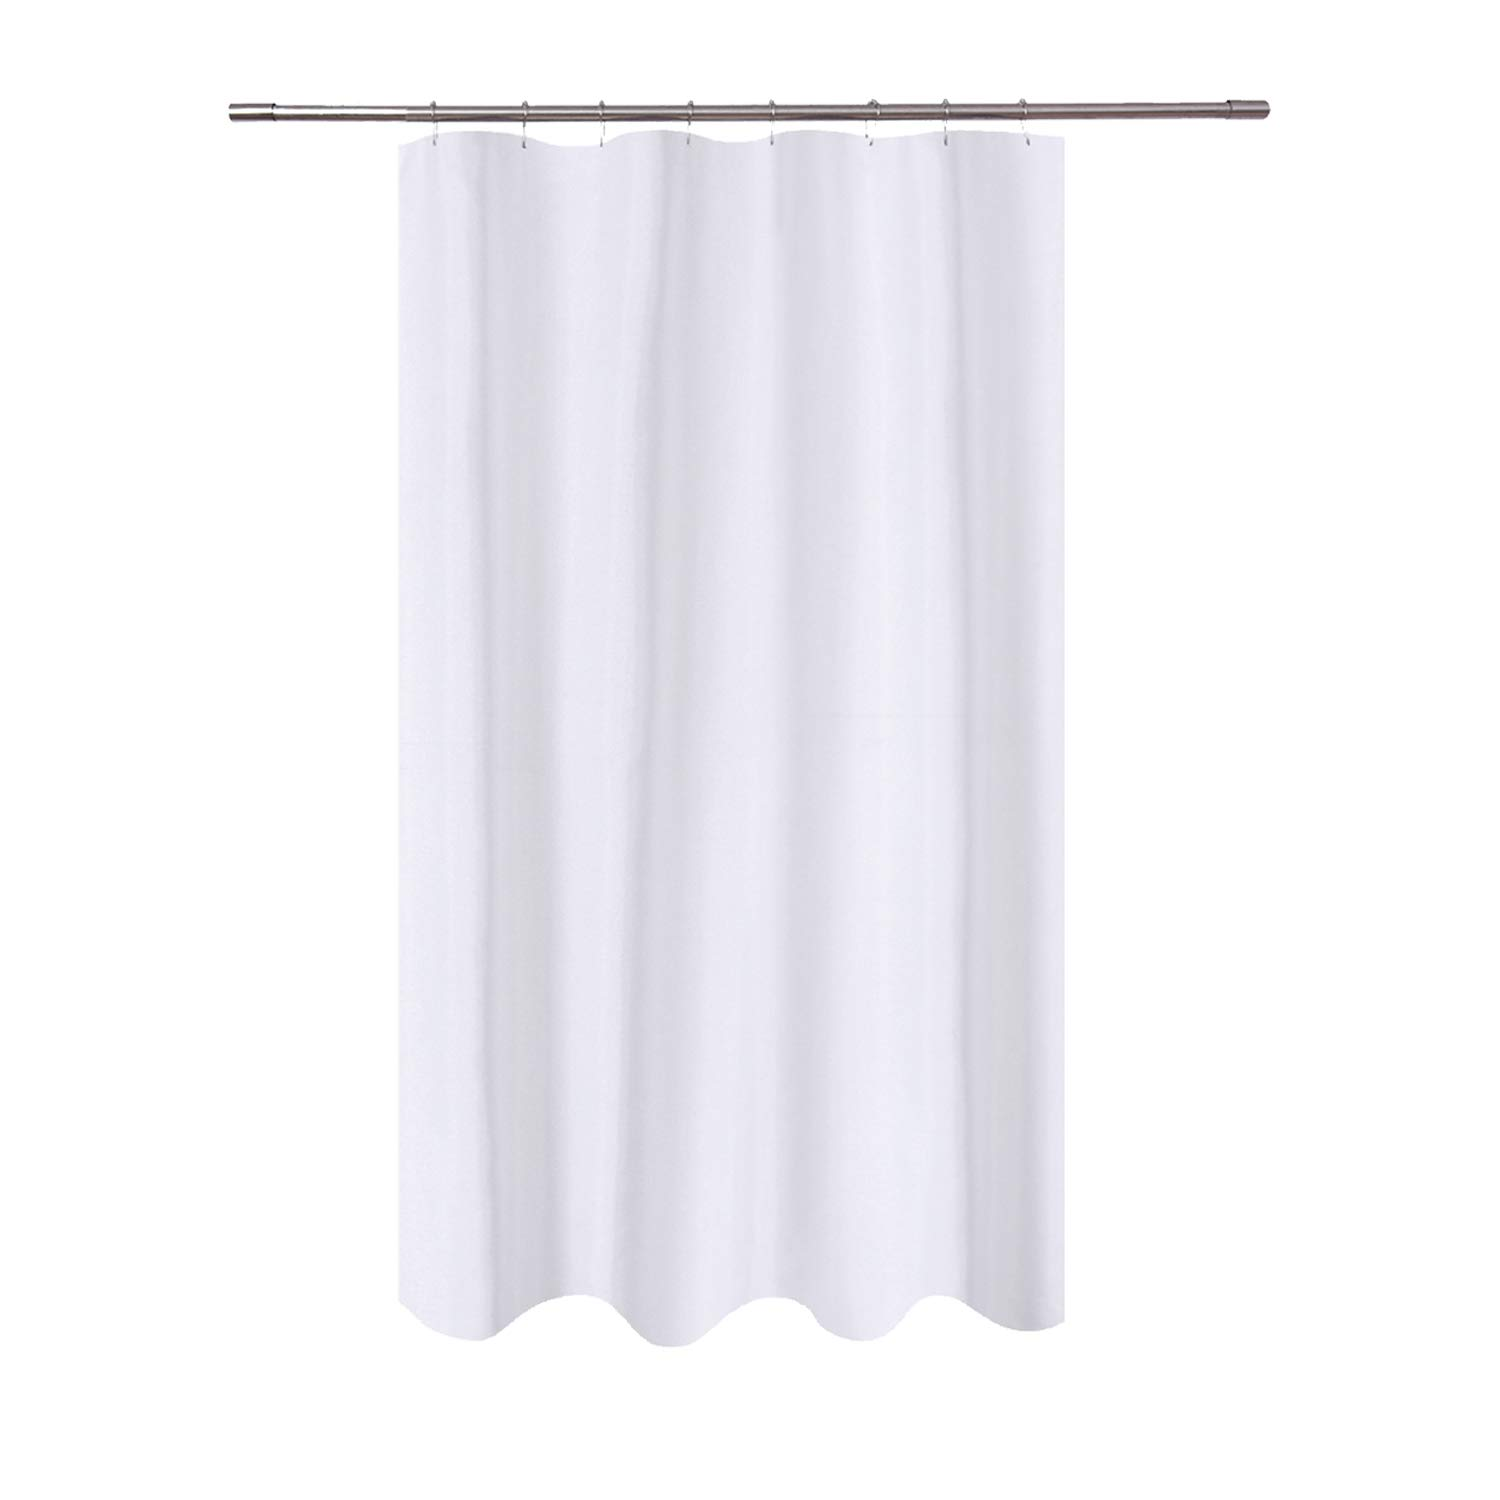 N&Y HOME Fabric Shower Curtain Liner 48 x 72 inches Bath Stall Size, Hotel Quality, Washable, Water Repellent, White Spa Bathroom Curtains with Grommets, 48x72